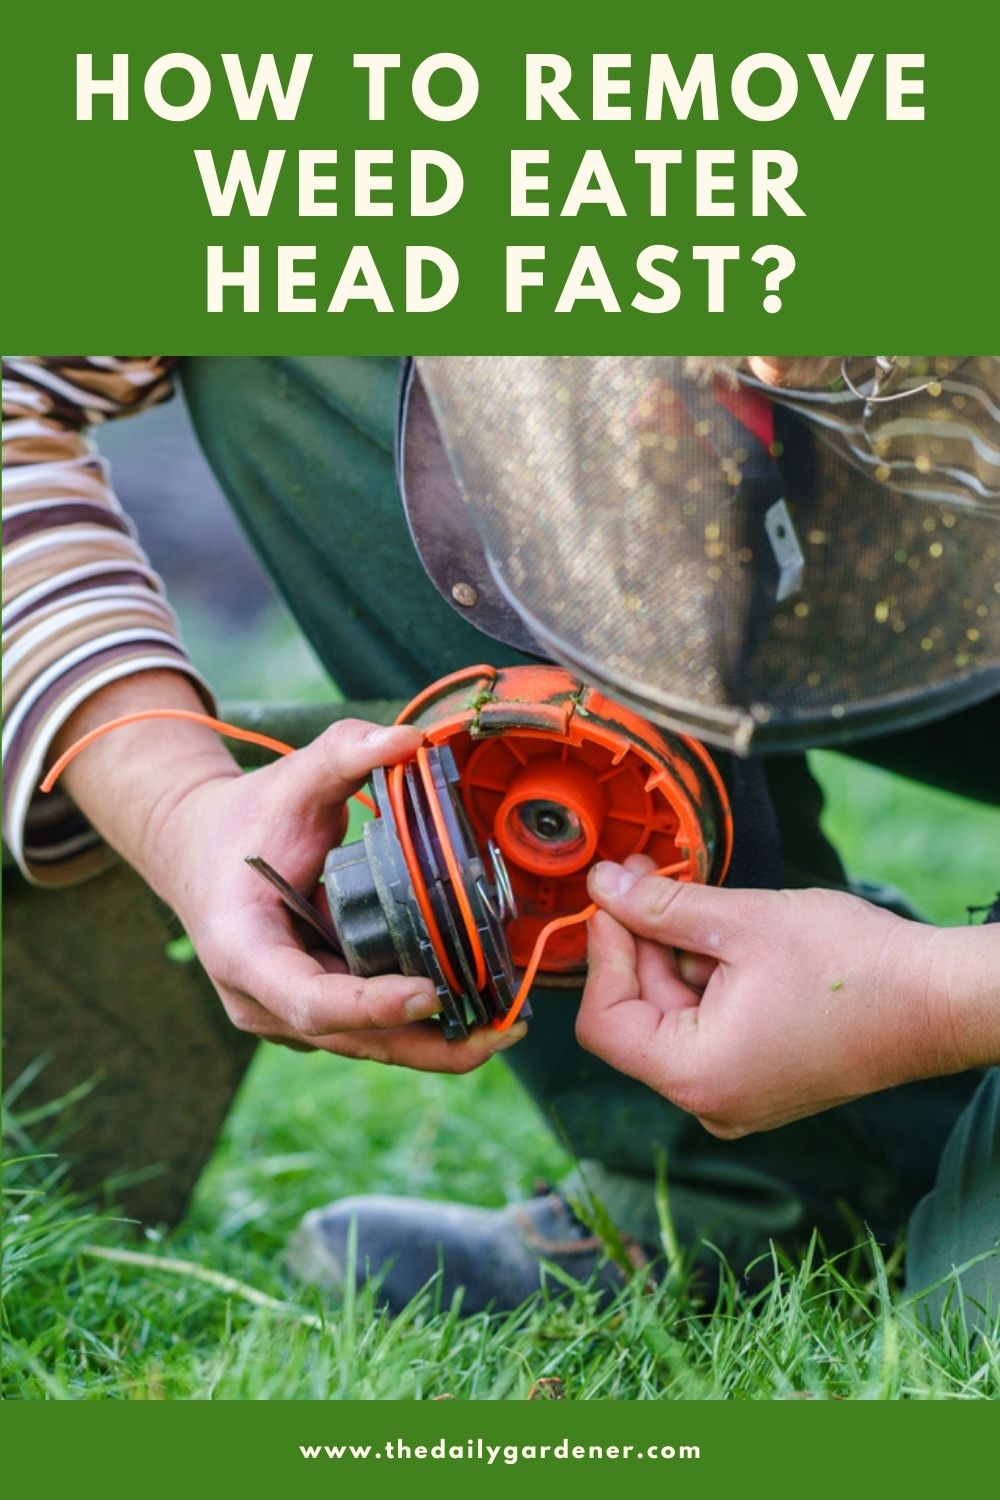 How to Remove Weed Eater Head Fast 1